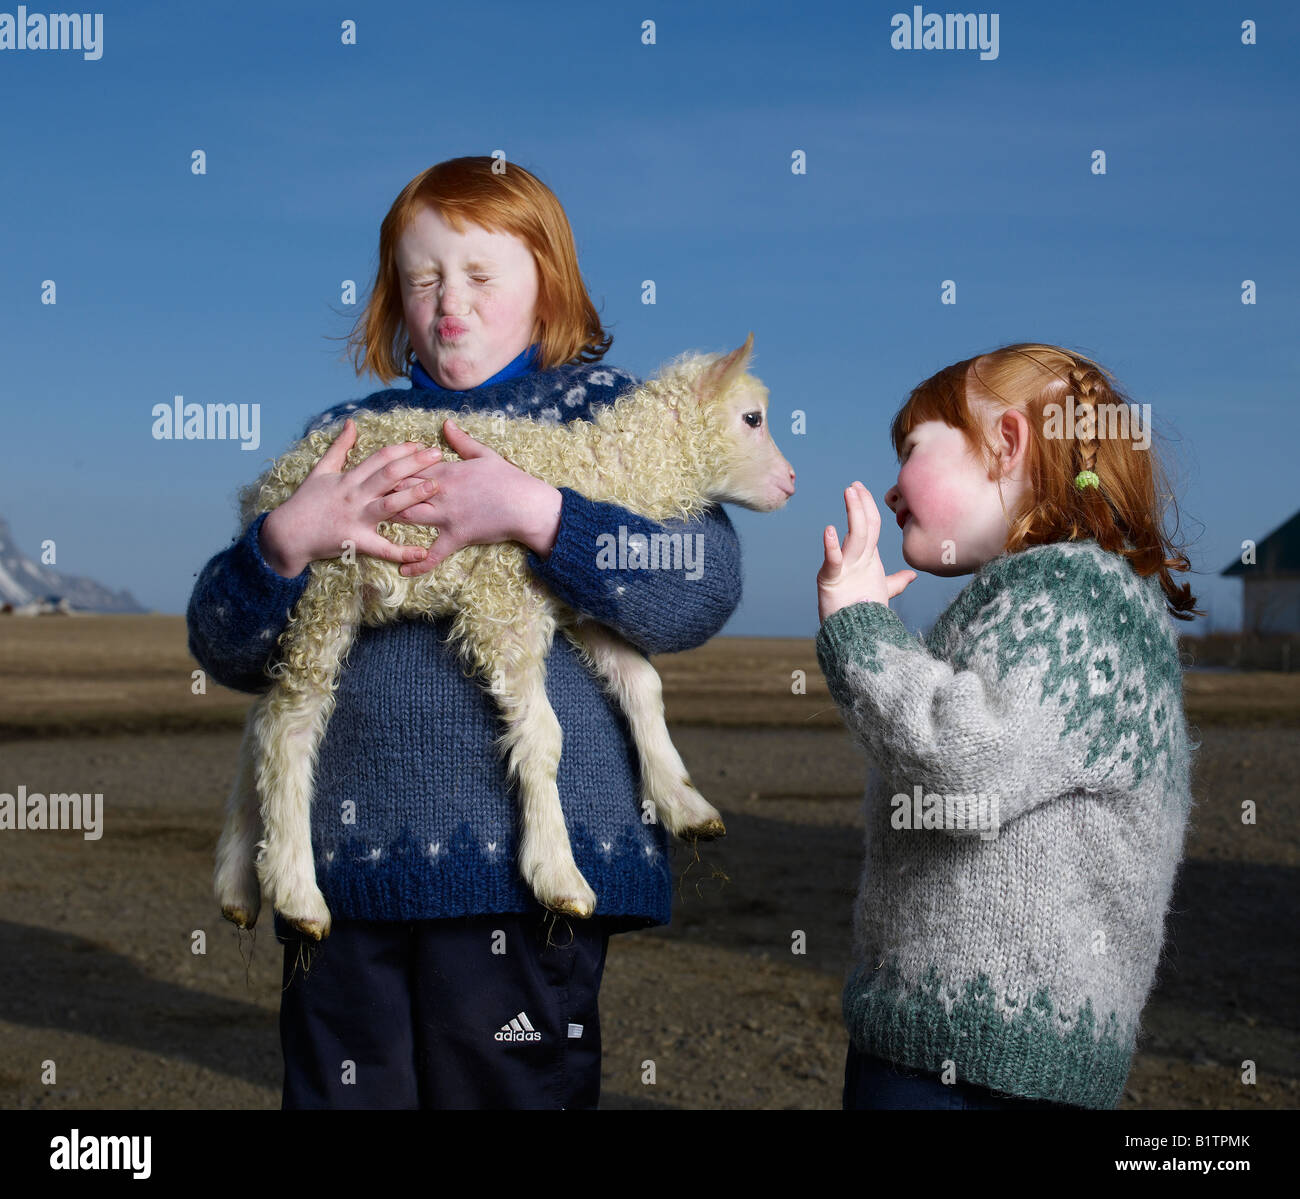 Red-headed sisters holding lamb, Hofn Iceland - Stock Image